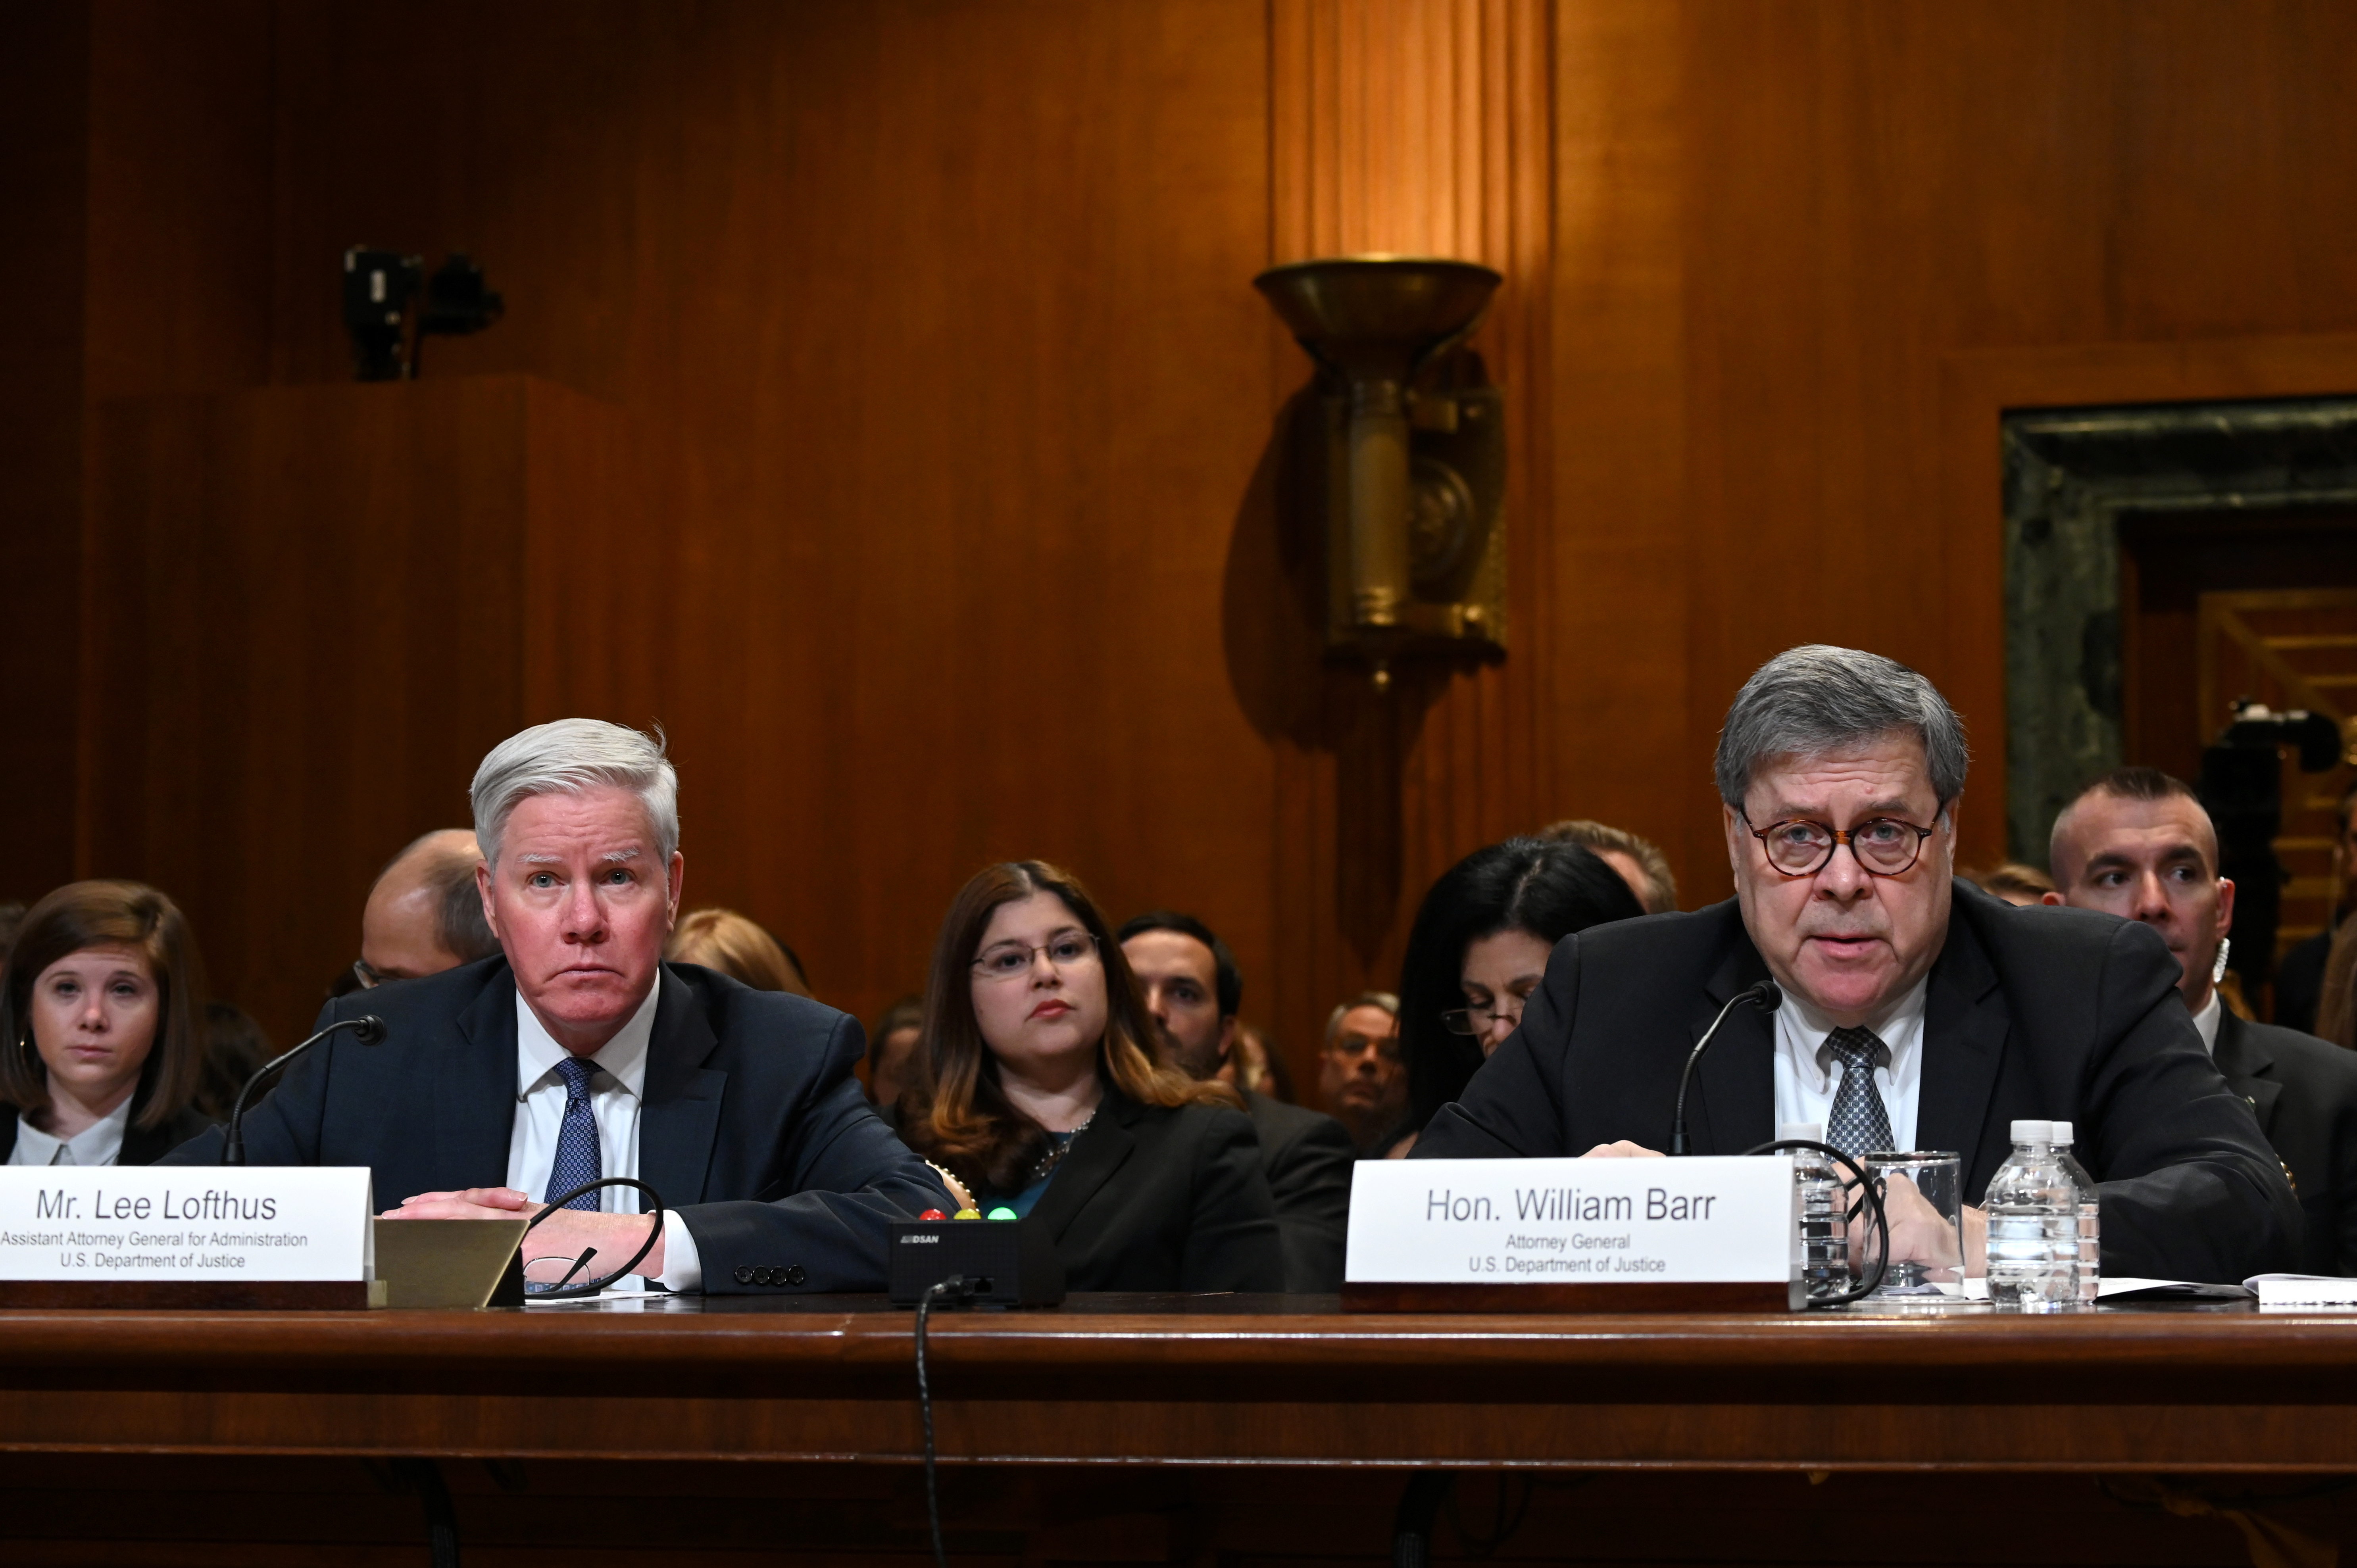 U.S. Assistant Attorney General for Administration Lee Lofthus and U.S. Attorney General William Barr participate in a Senate Appropriations Subcommittee hearing on the proposed budget estimates for the Department of Justice in Washington, U.S. April 10, 2019. REUTERS/Erin Scott